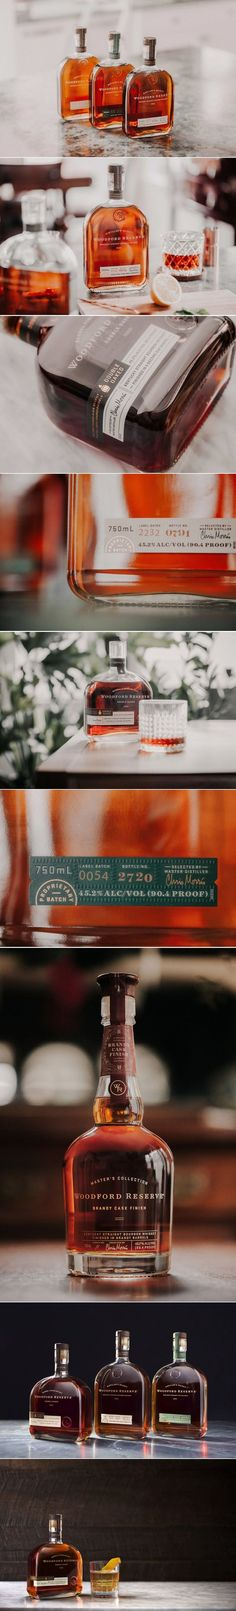 Woodford Reserve - Brand Evolution & Packaging Redesign — The Dieline - Branding & Packaging Design... - a grouped images picture - Pin Them All